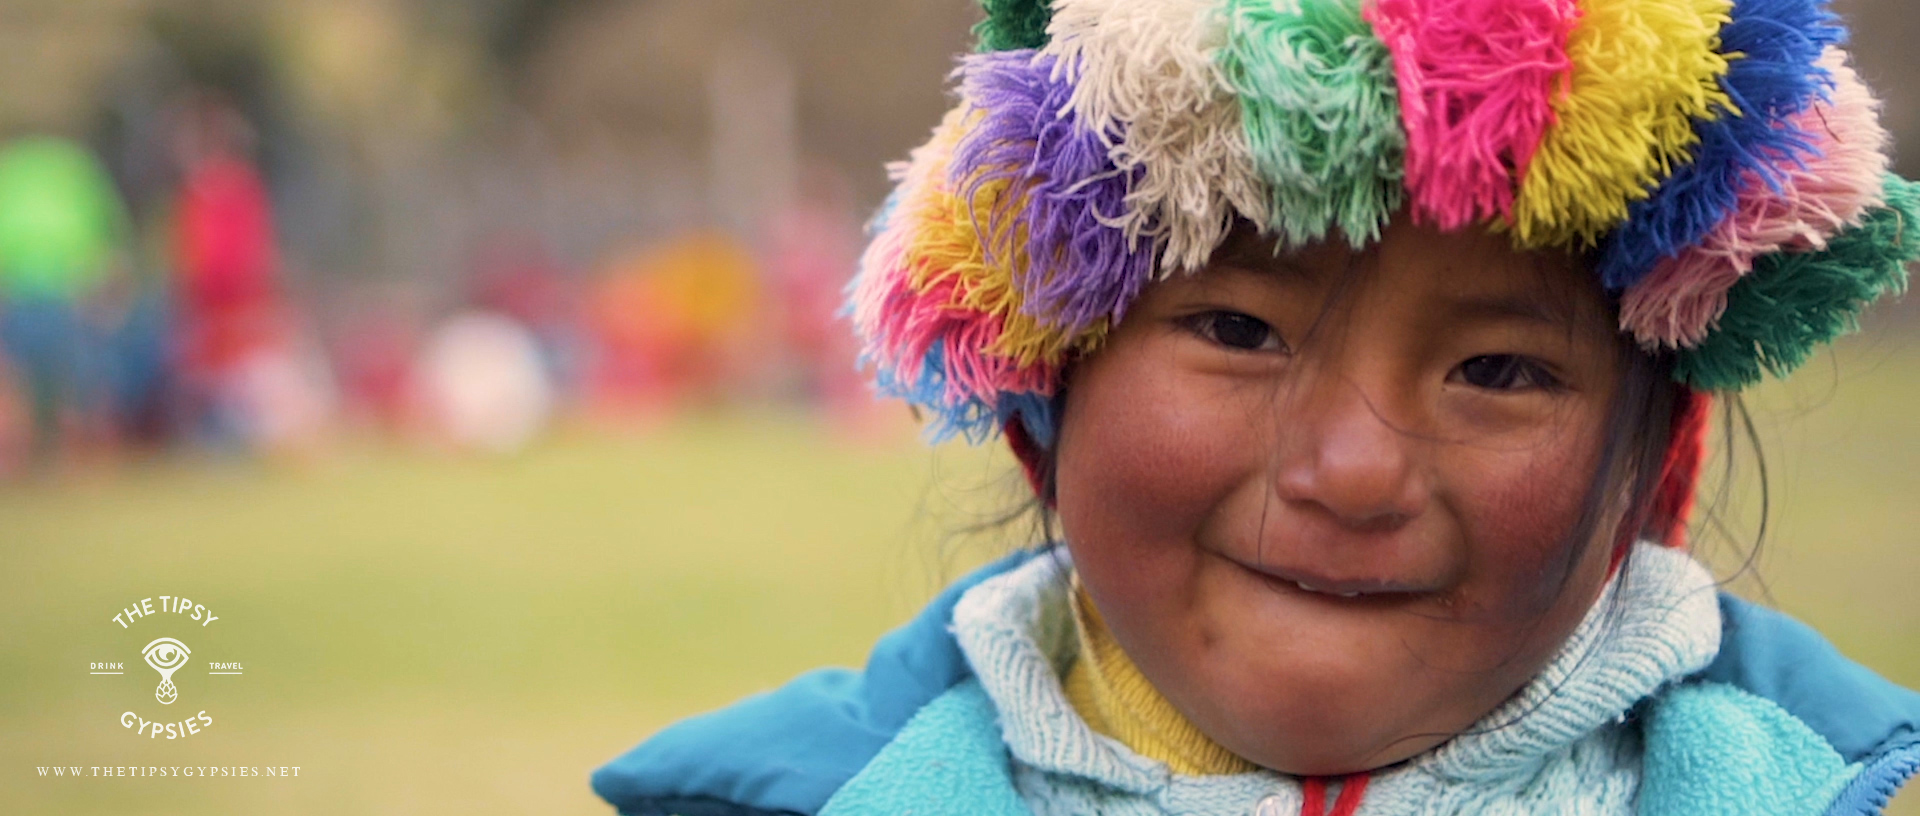 A young girl from the village of Huilloc.